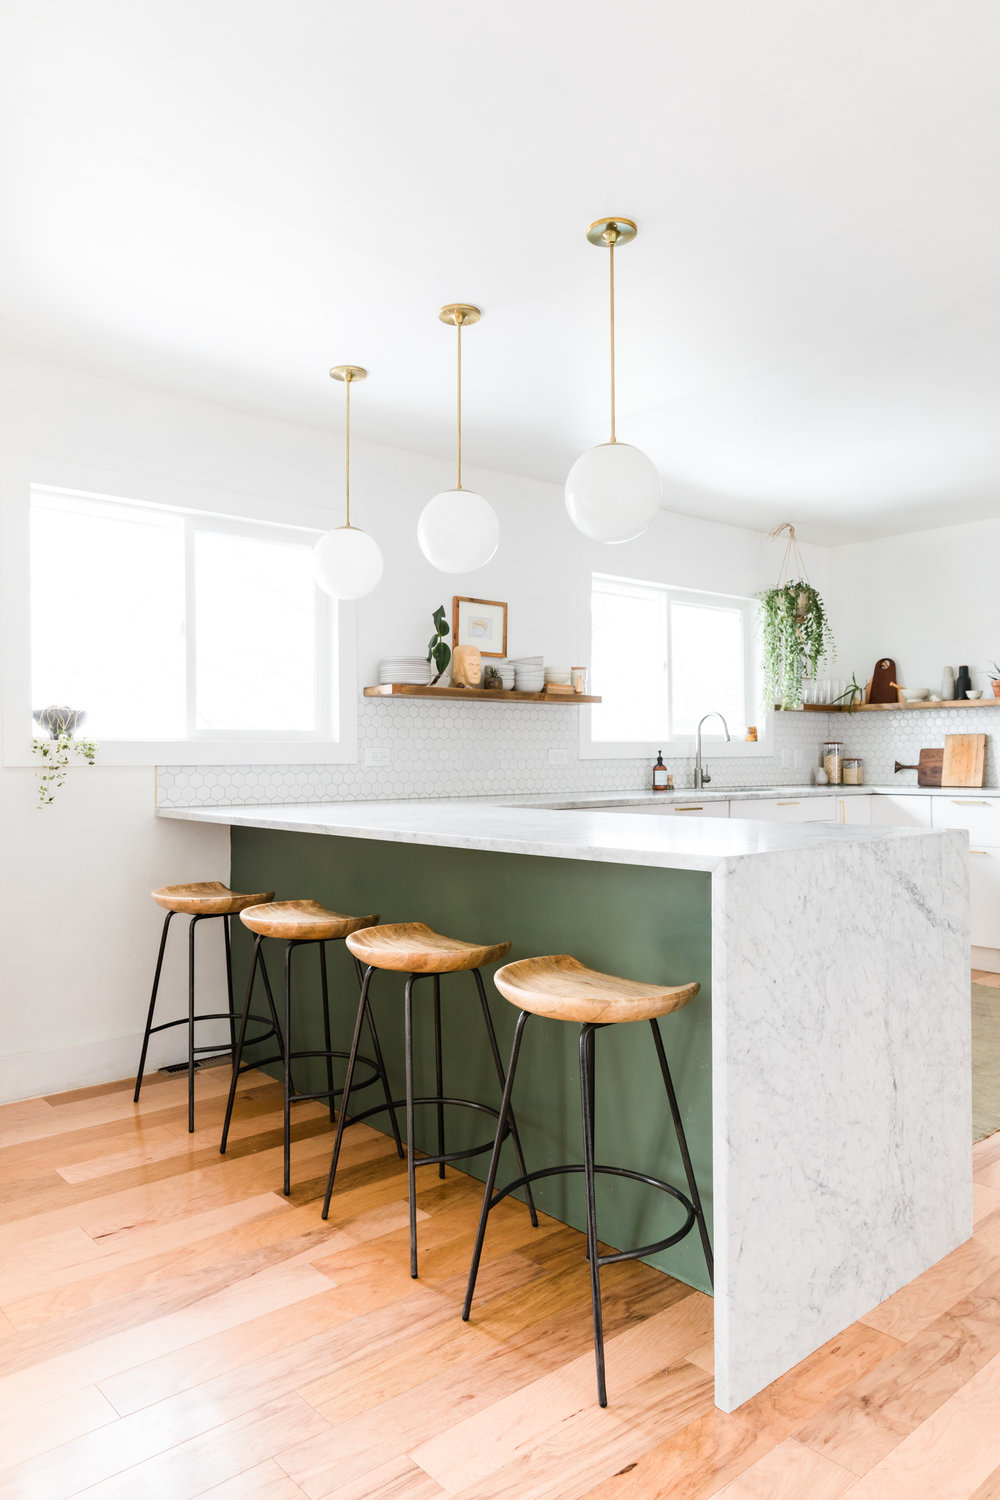 Green and white minimalist kitchen with marble waterfall counters and wood-topped stools.